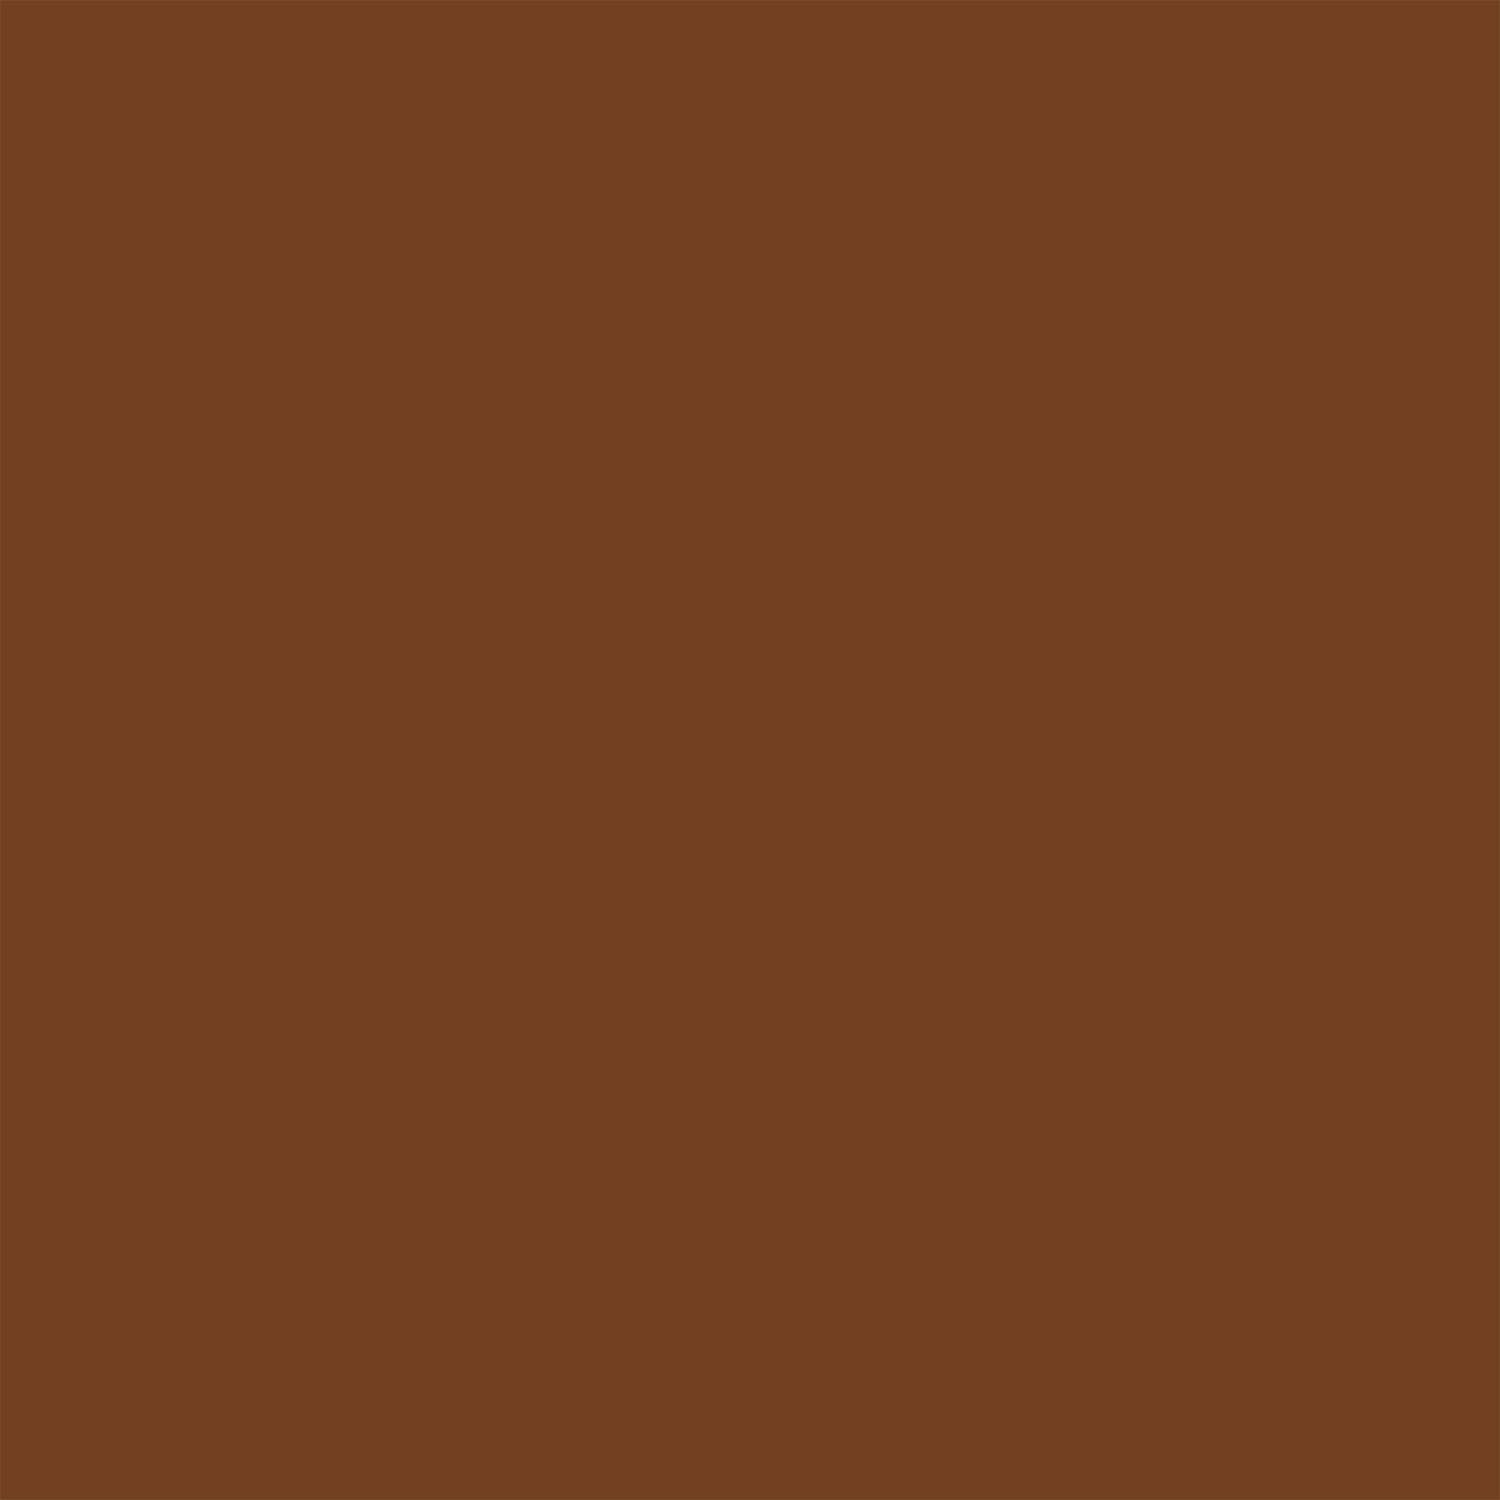 Brown color google haku my colour palette pinterest - Colors that go with brown ...